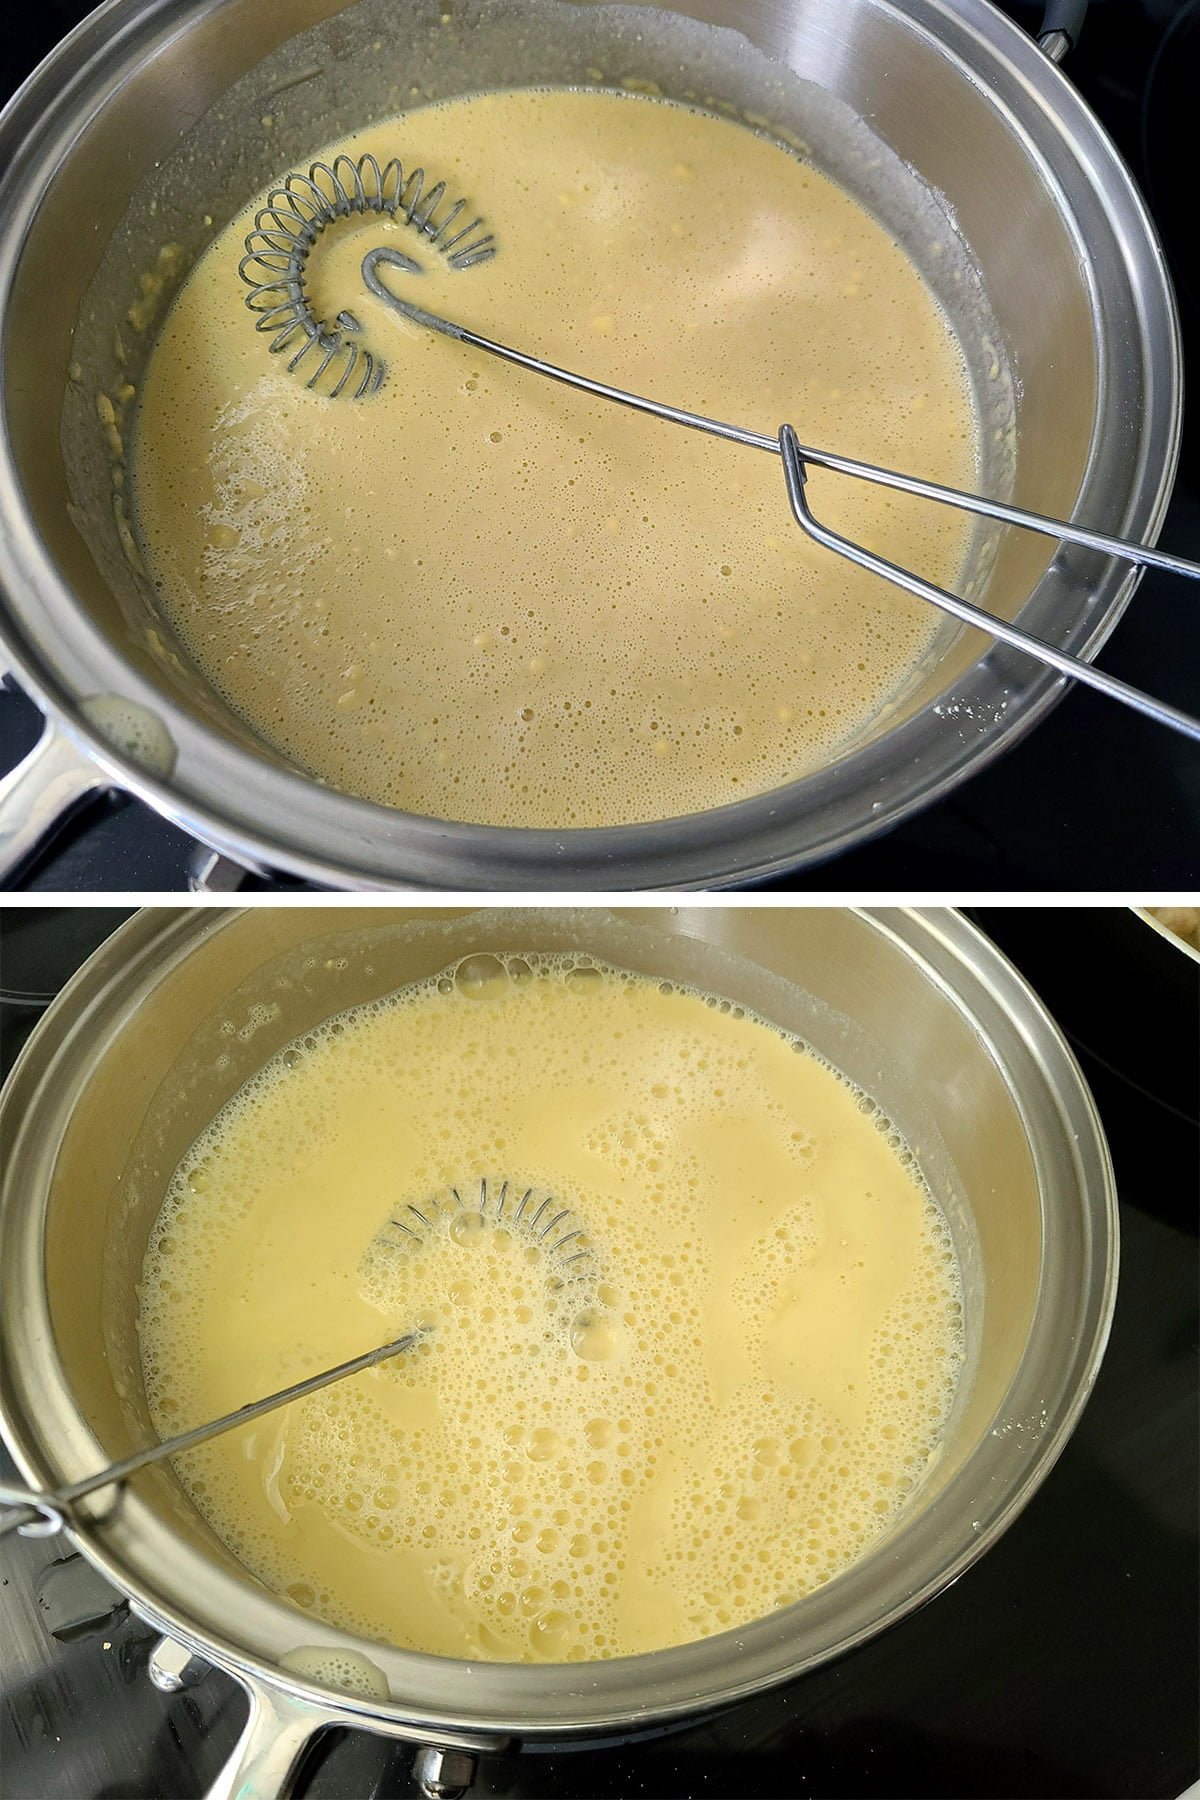 A two part image showing a thin mix of water and chickpea flour, befoer and after it starts to thicken.